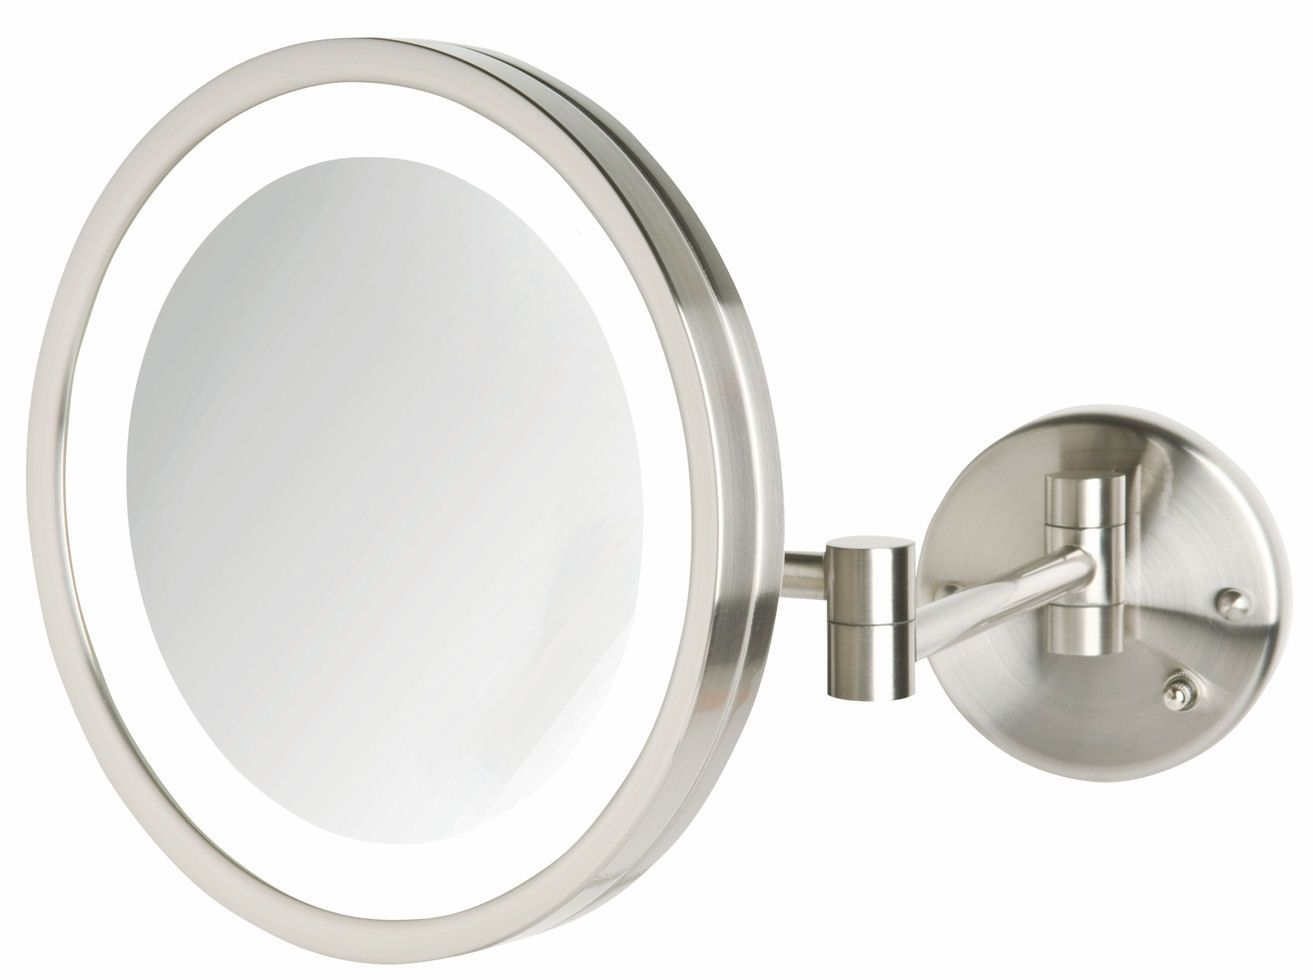 Wall Mounted Lighted Magnifying Mirror 10x Wall Mounted Lighted